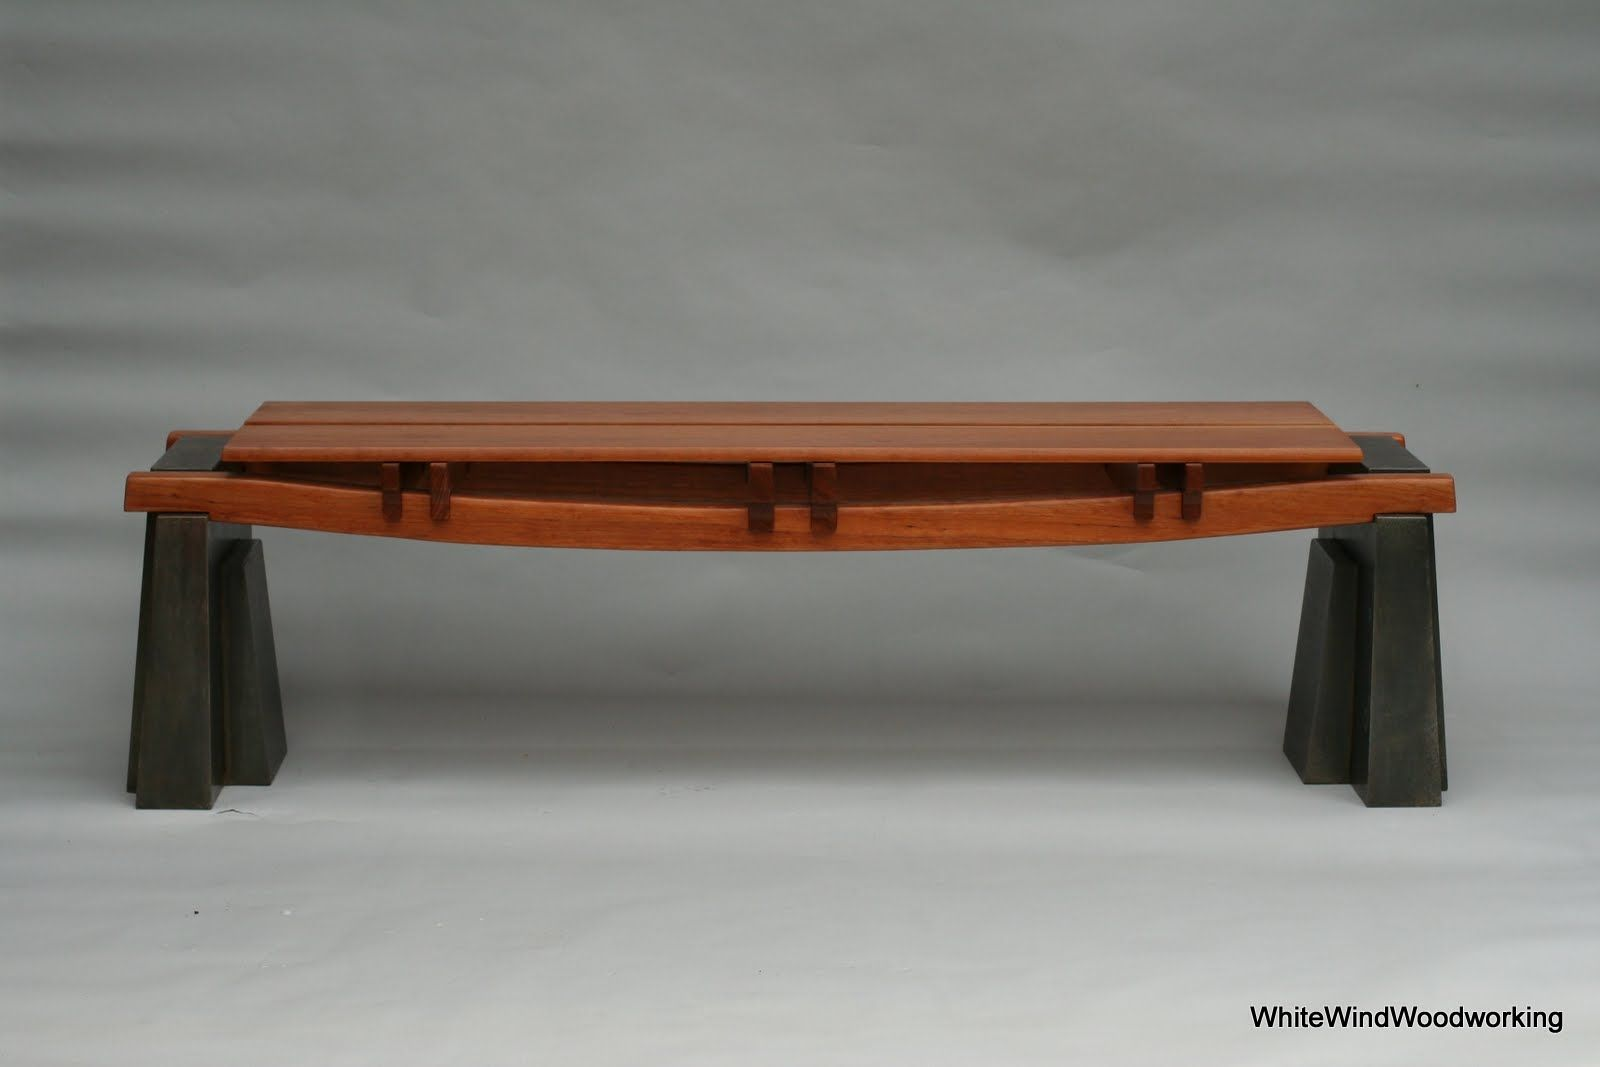 Handmade Austin Cherry Bench By White Wind Woodworking